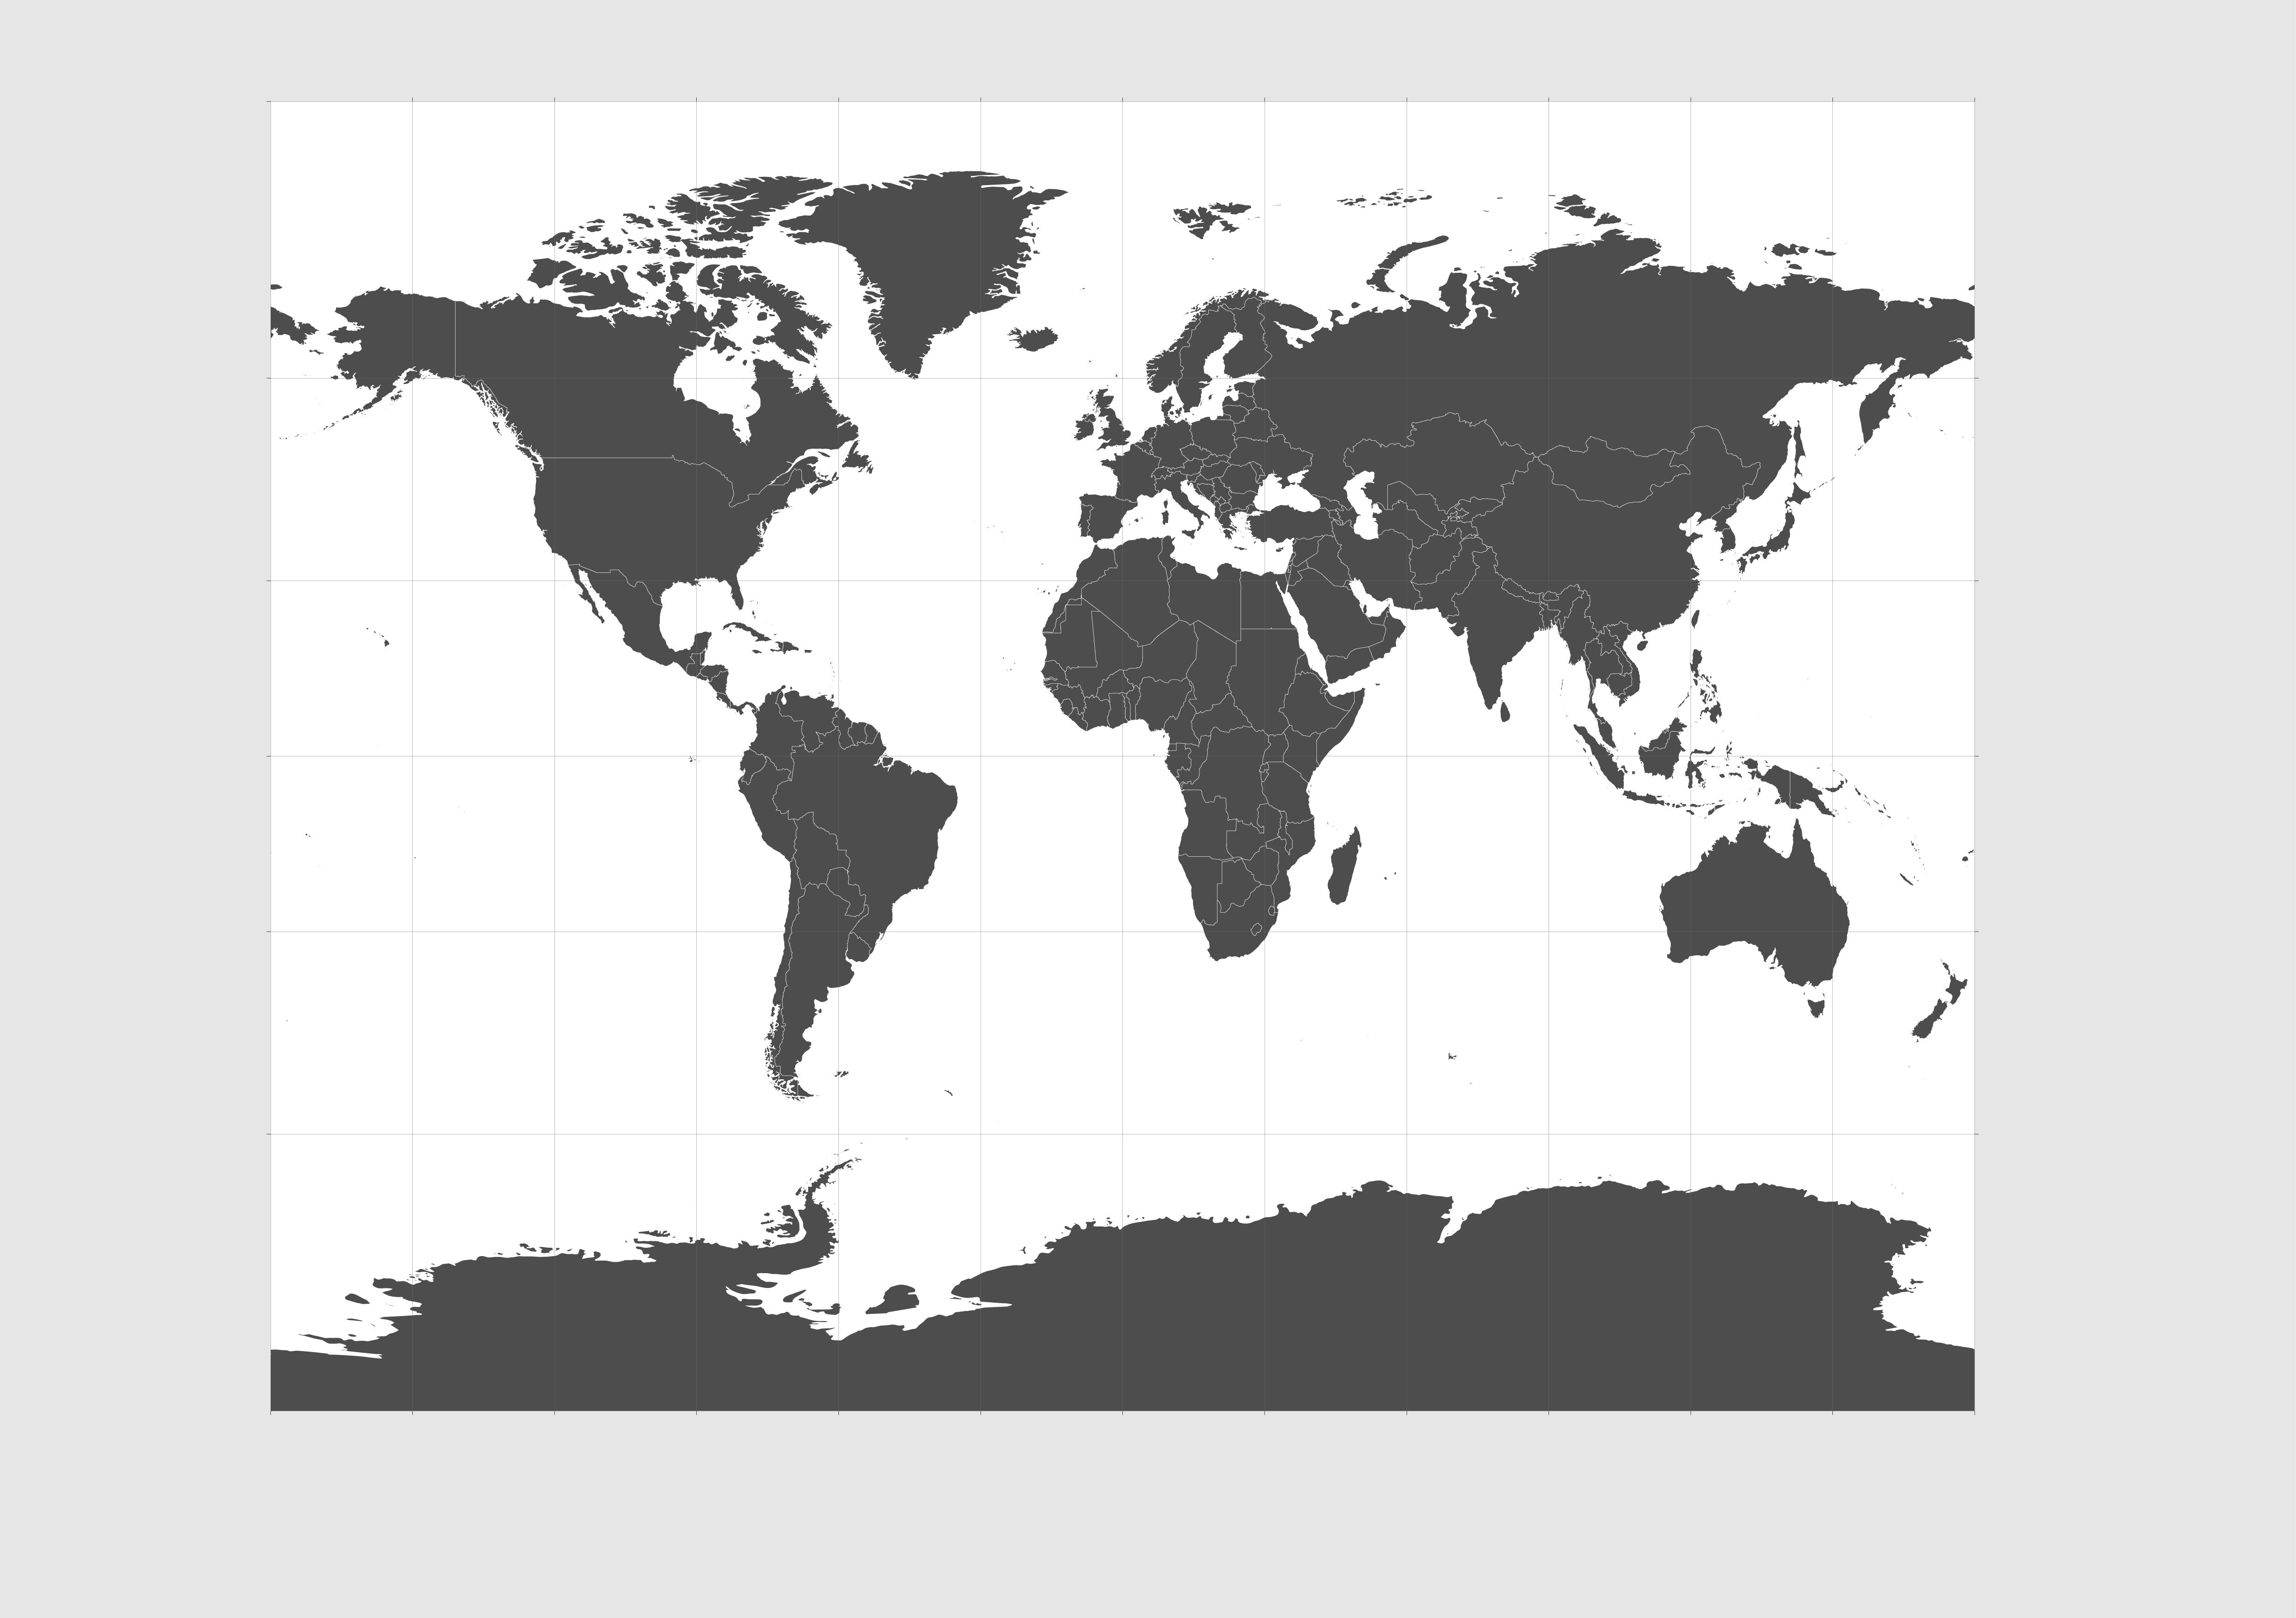 World map silhouette google search veggpynt pinterest across stitch the world map youve been everywhere from new york to new zealand and youre always looking for new ways to capture your travel records gumiabroncs Images